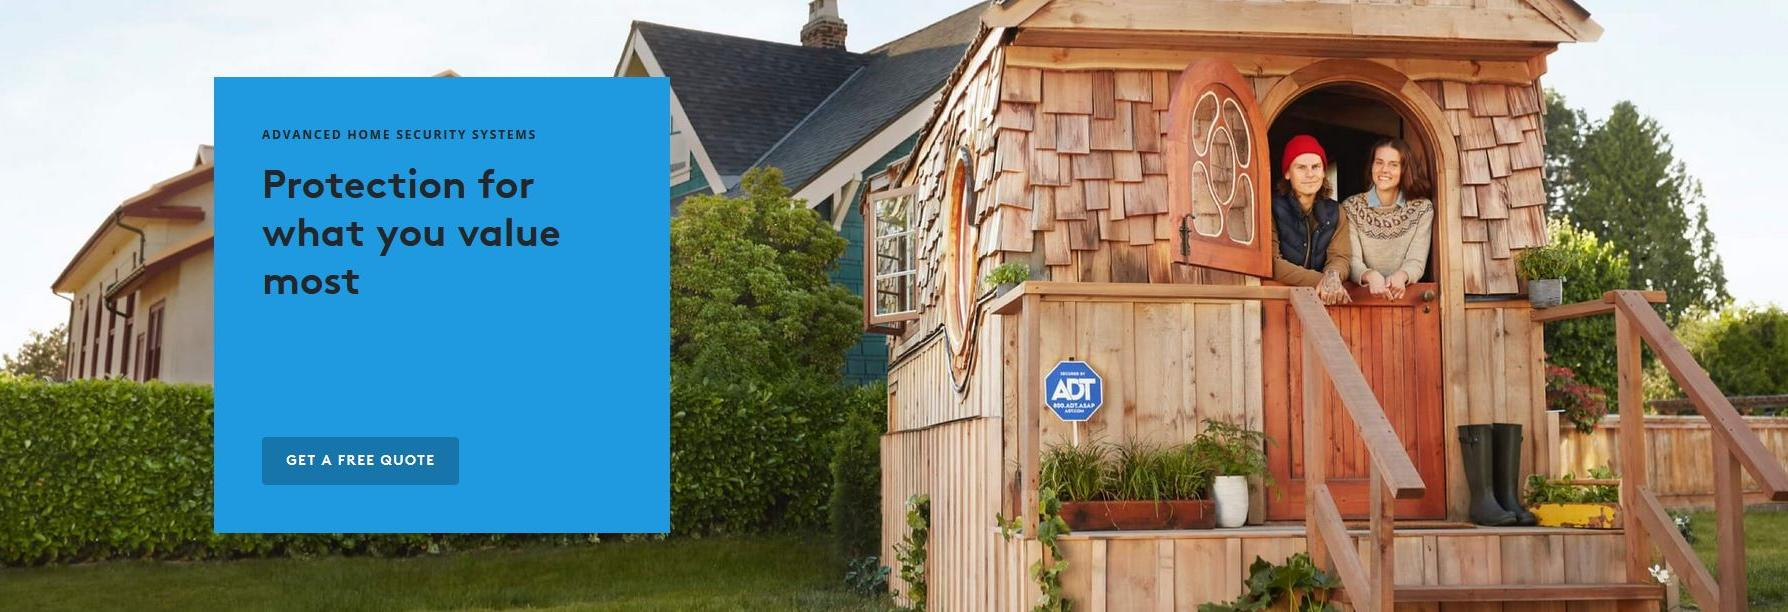 ADT Protect your home banner